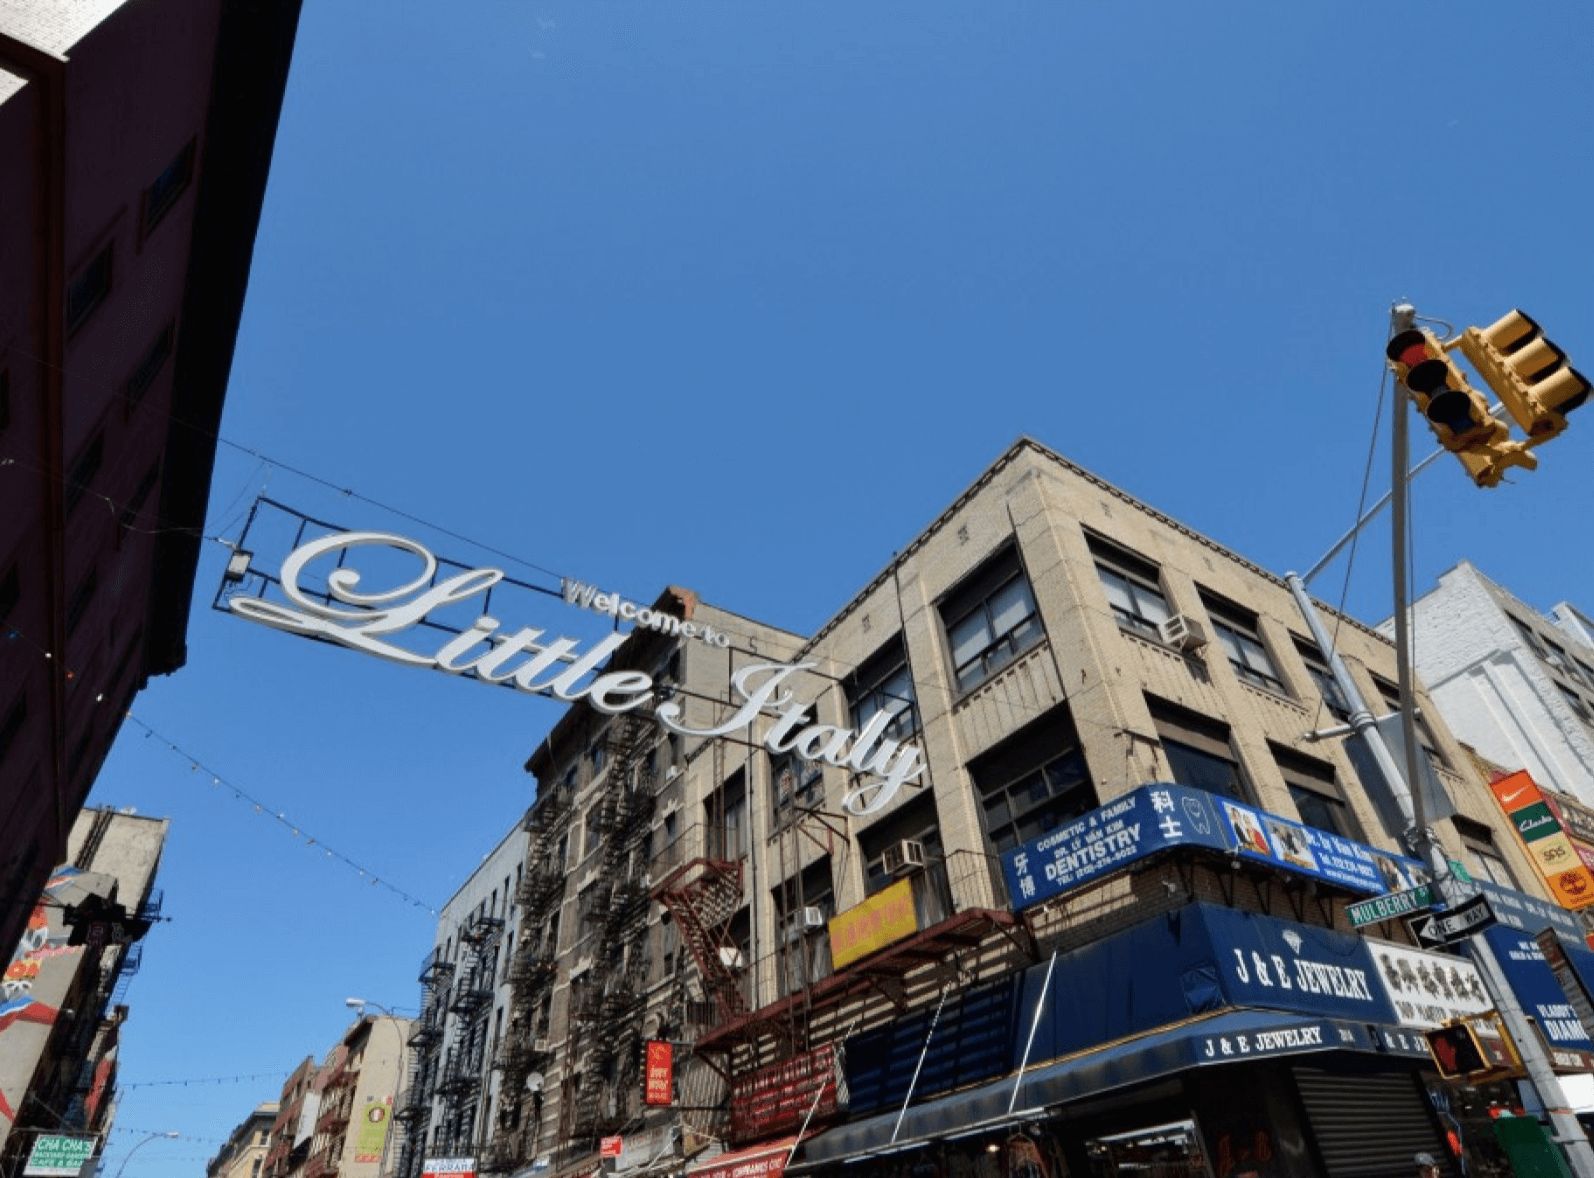 BTSNYC Experiences On Going Urban Adventure Tenements Tales and Tastes Little Italy